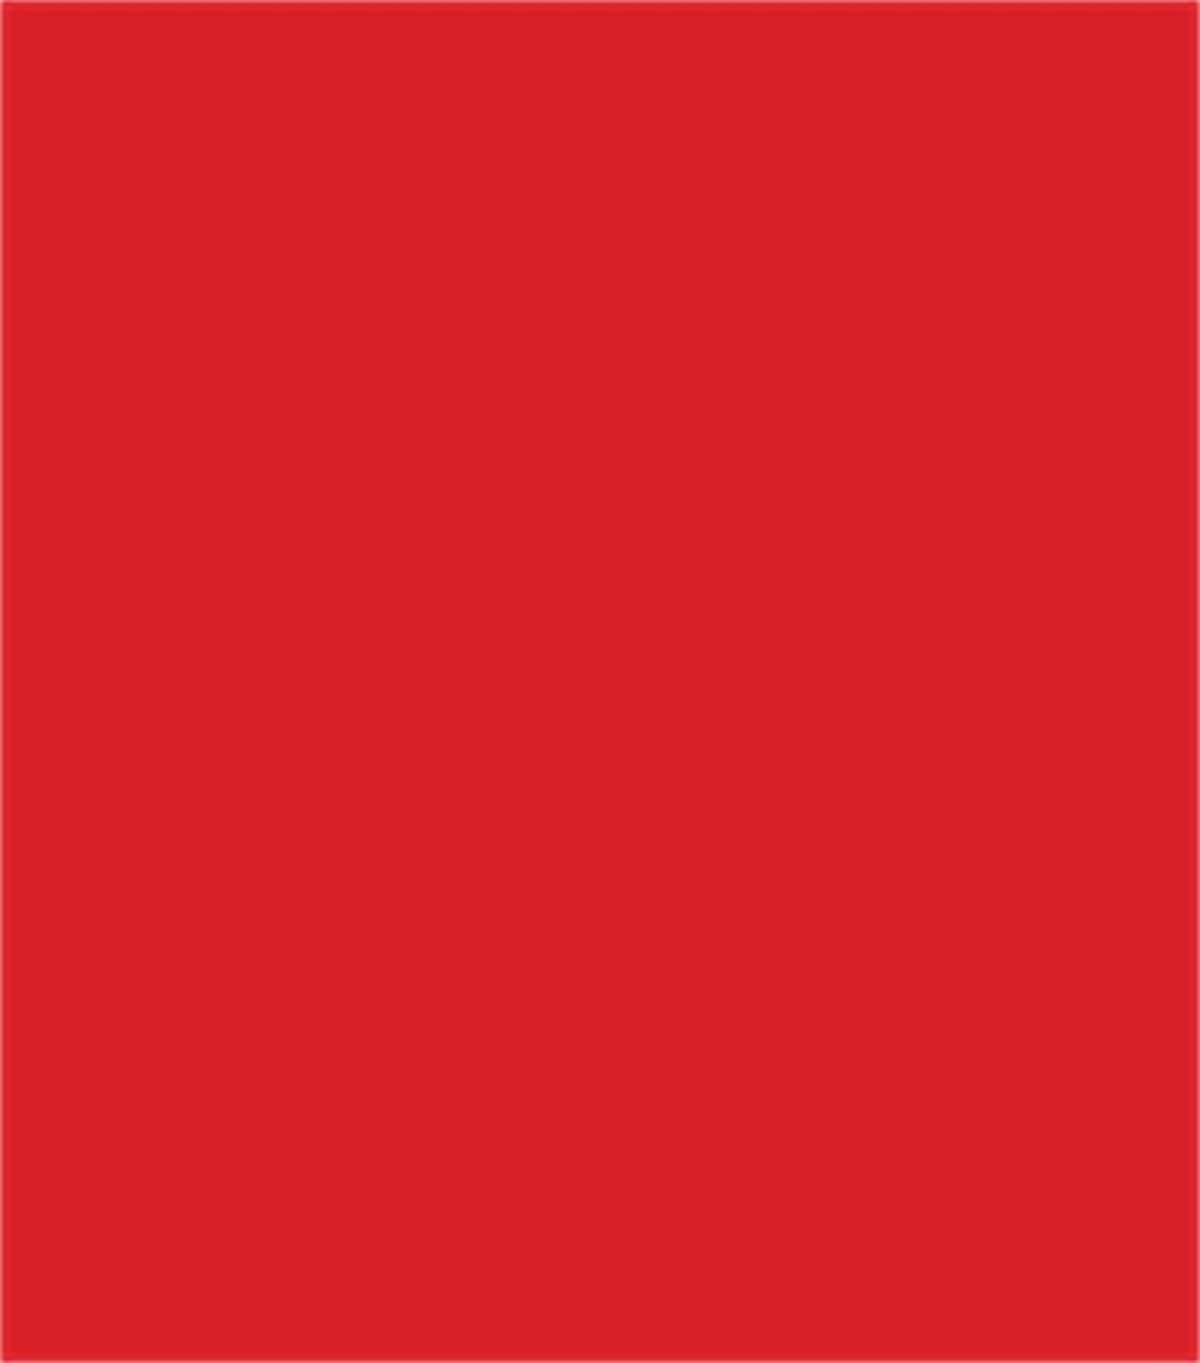 Coats Thread /& Zippers Invisible Zipper Atom Red 20-Inch to 22-Inch